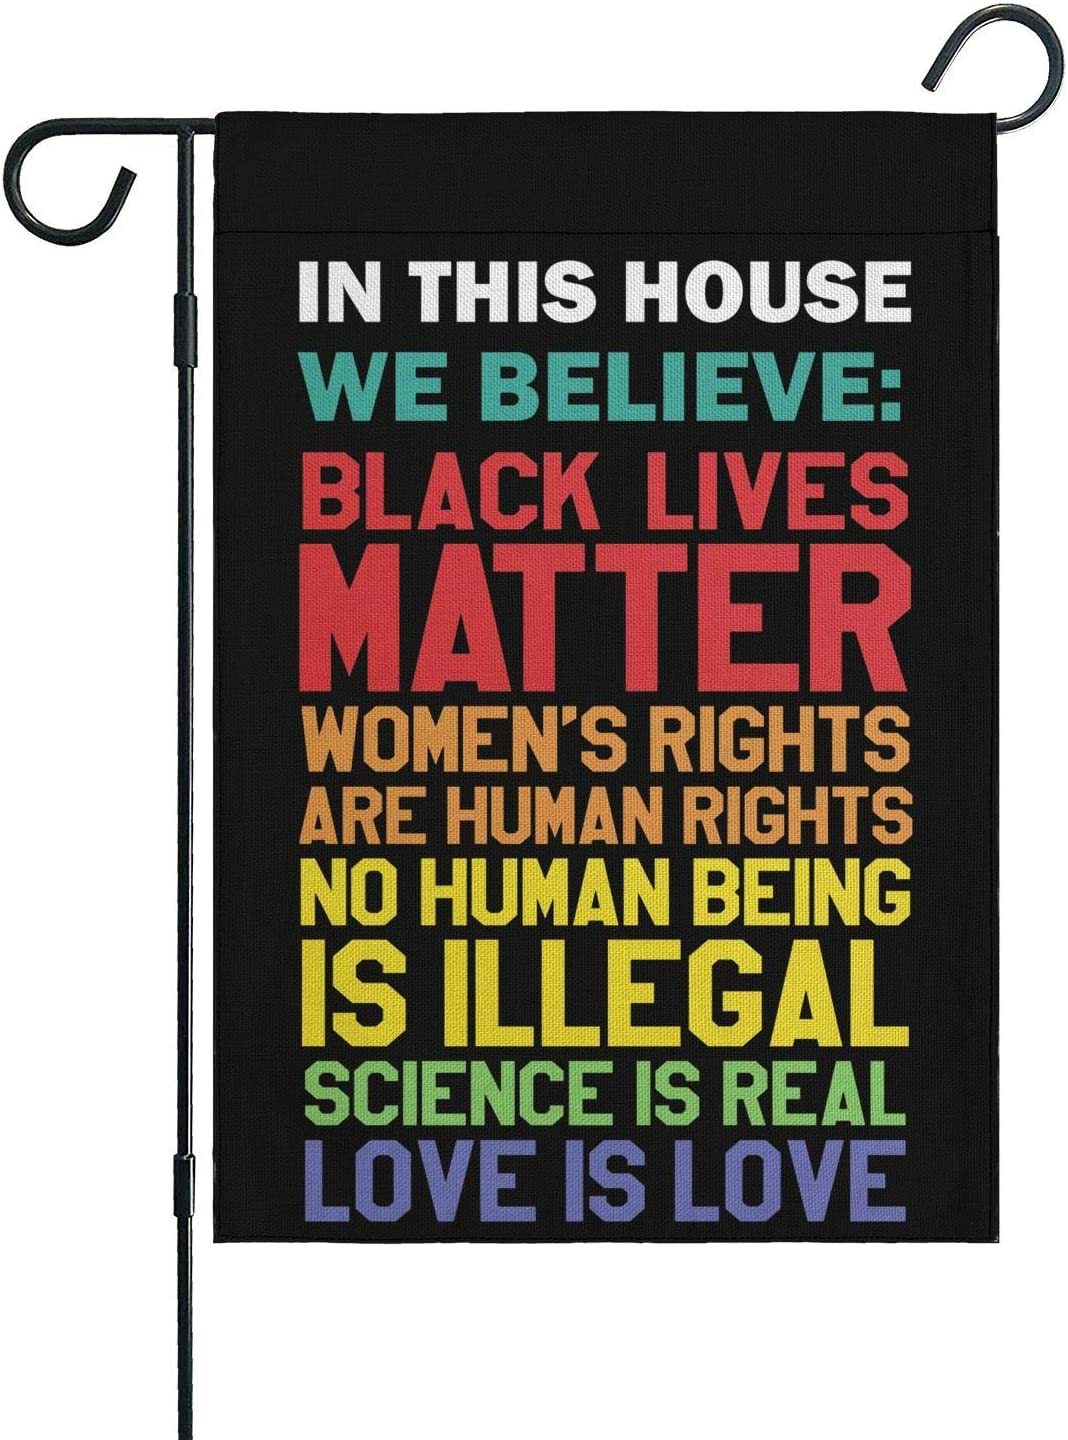 Black Lives Matter Lawn Sign in This House We Believe Flag Together We Rise House Decorative Garden Flags Yard Outdoor Decor 12 x 18 Inches Kindness Peace Equality Love Flag